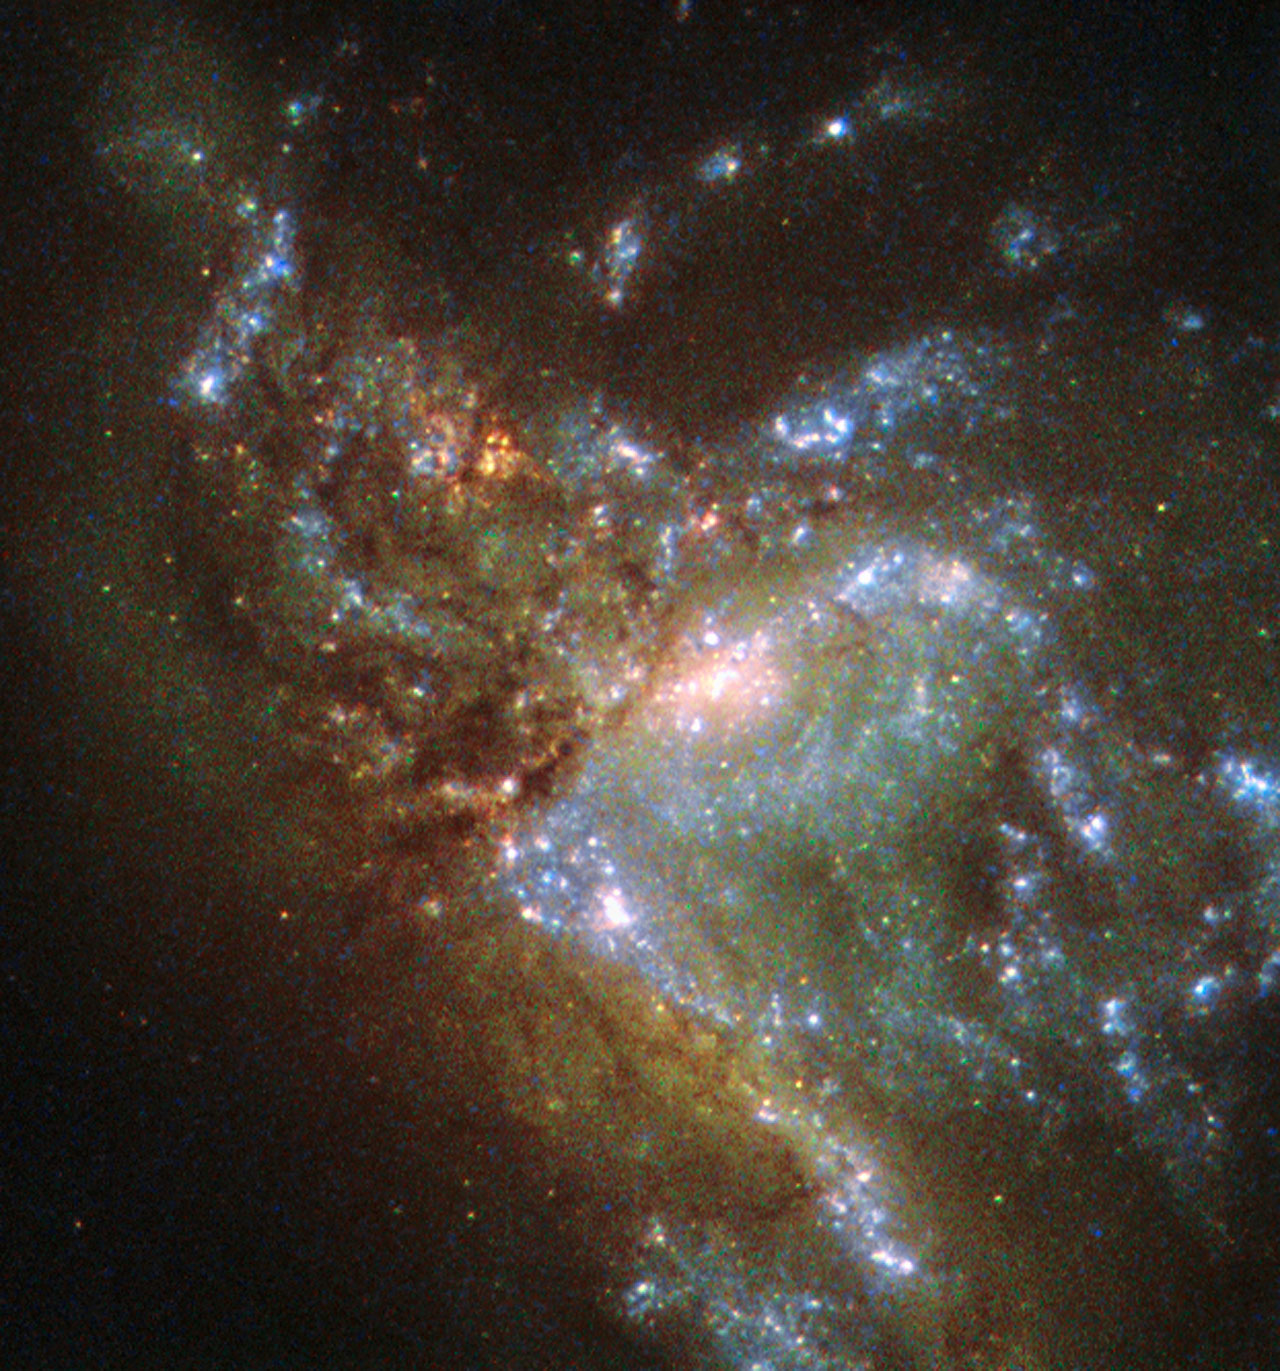 Hubble View of Merging Galaxies